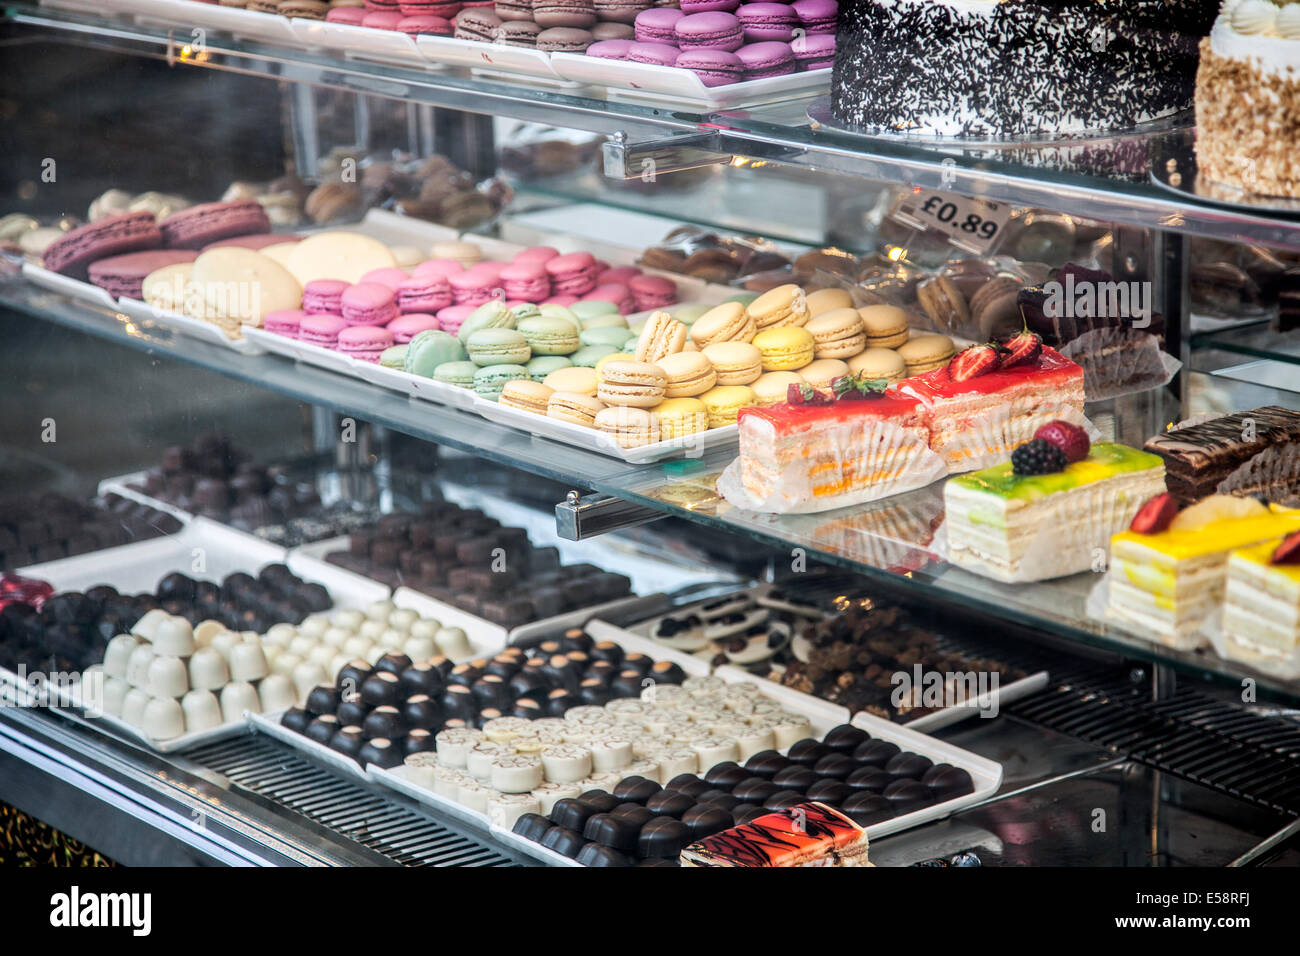 A patisserie shop display with a selection of cakes, chocolates and macarons in Kentish Town, London - Stock Image